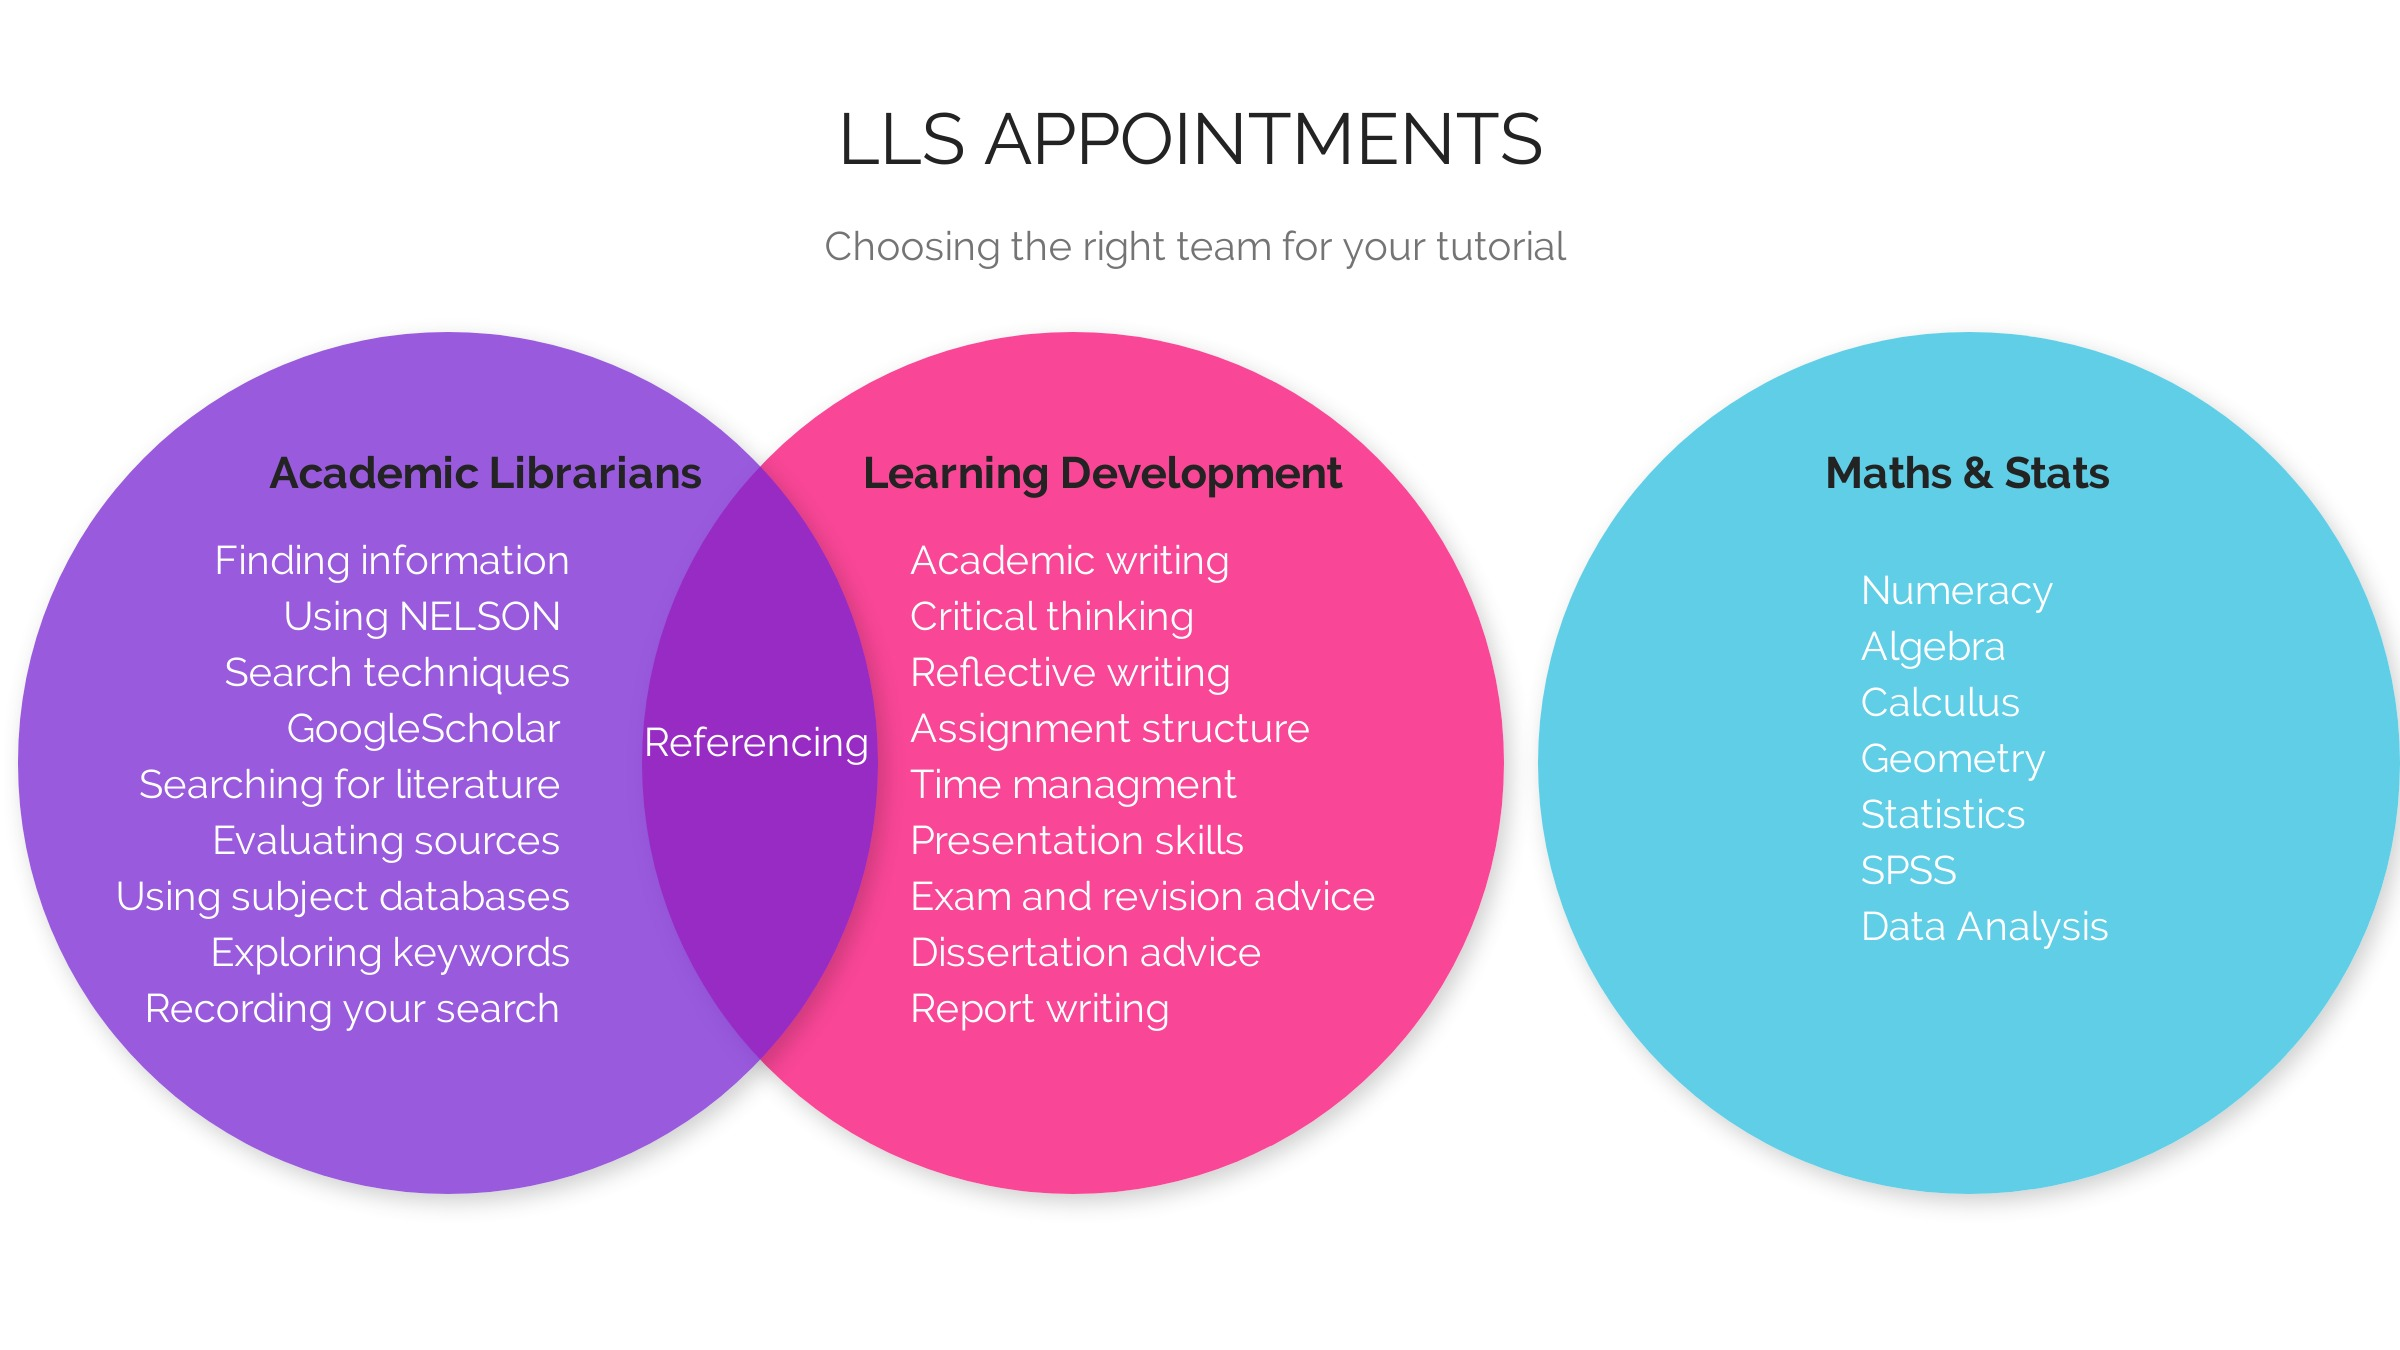 LLS appointments: choosing the right team